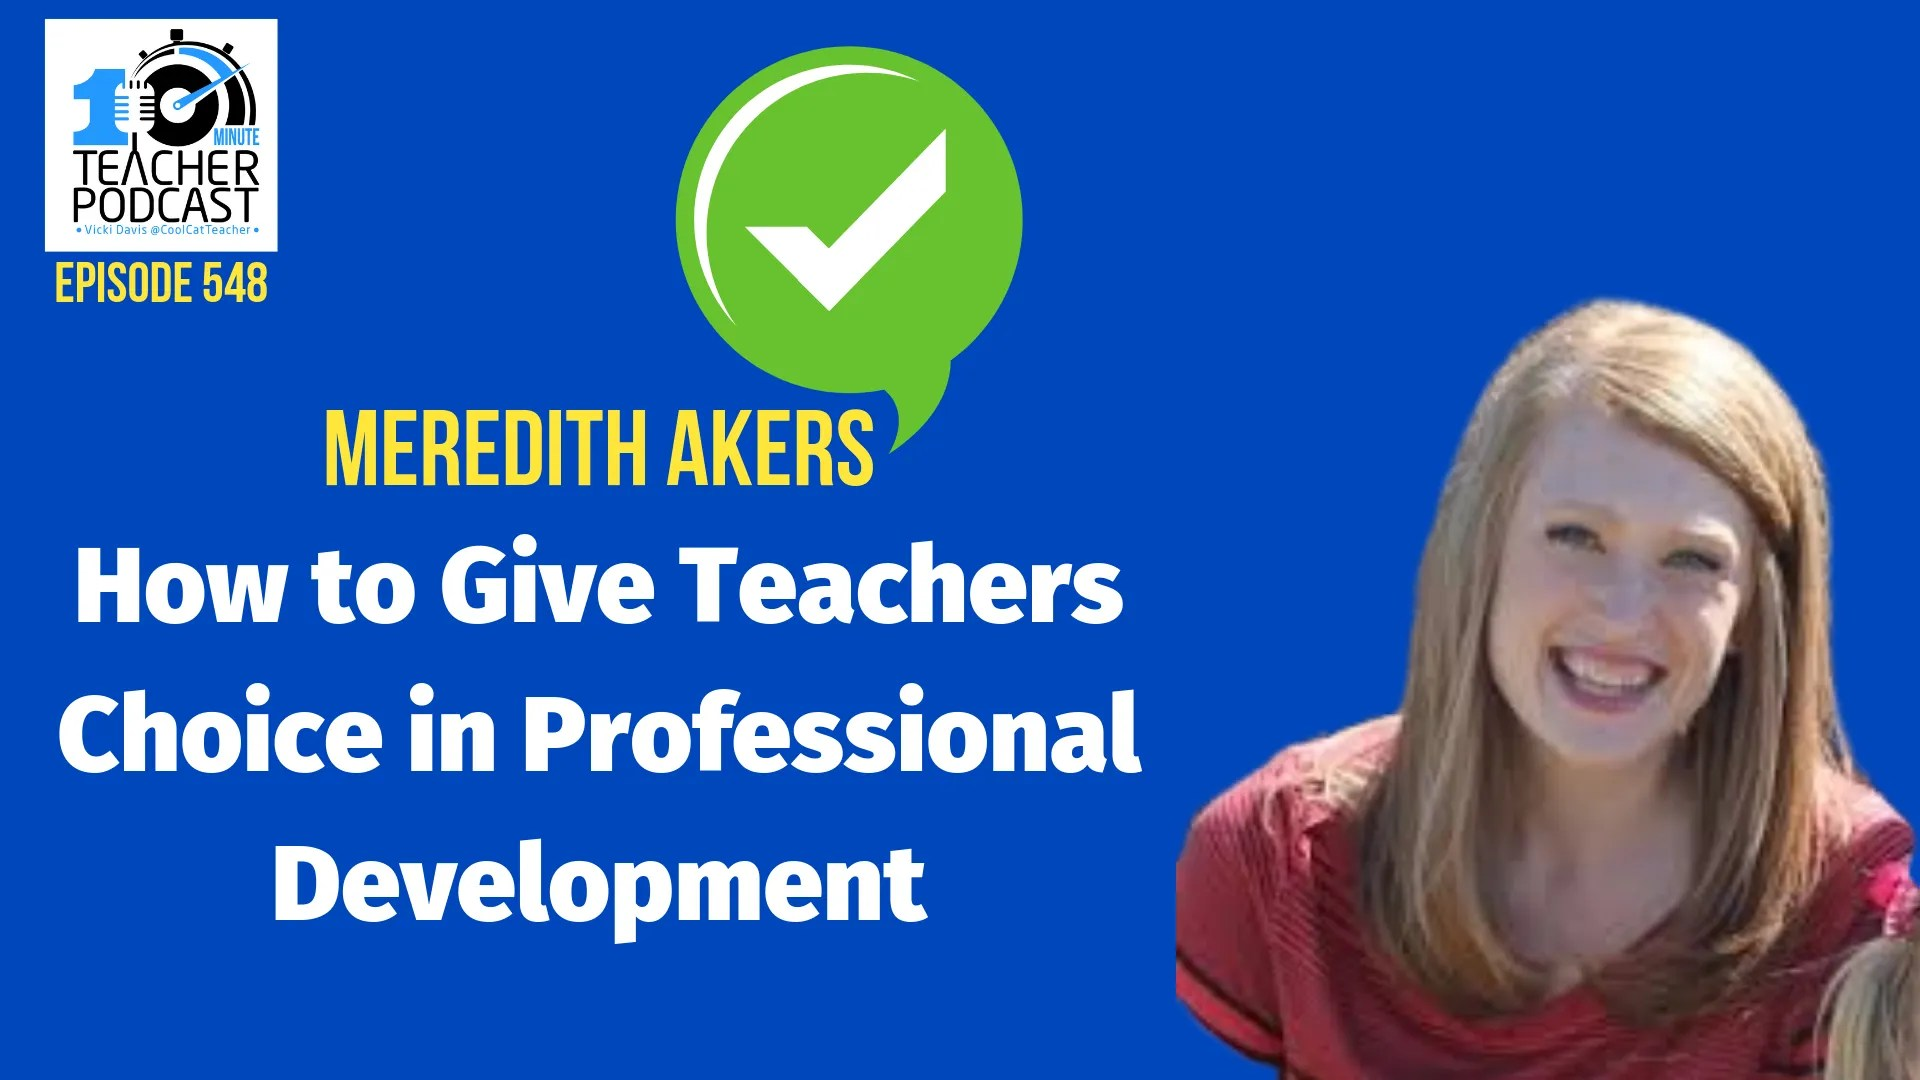 How to Give Teachers Choice in Professional Development